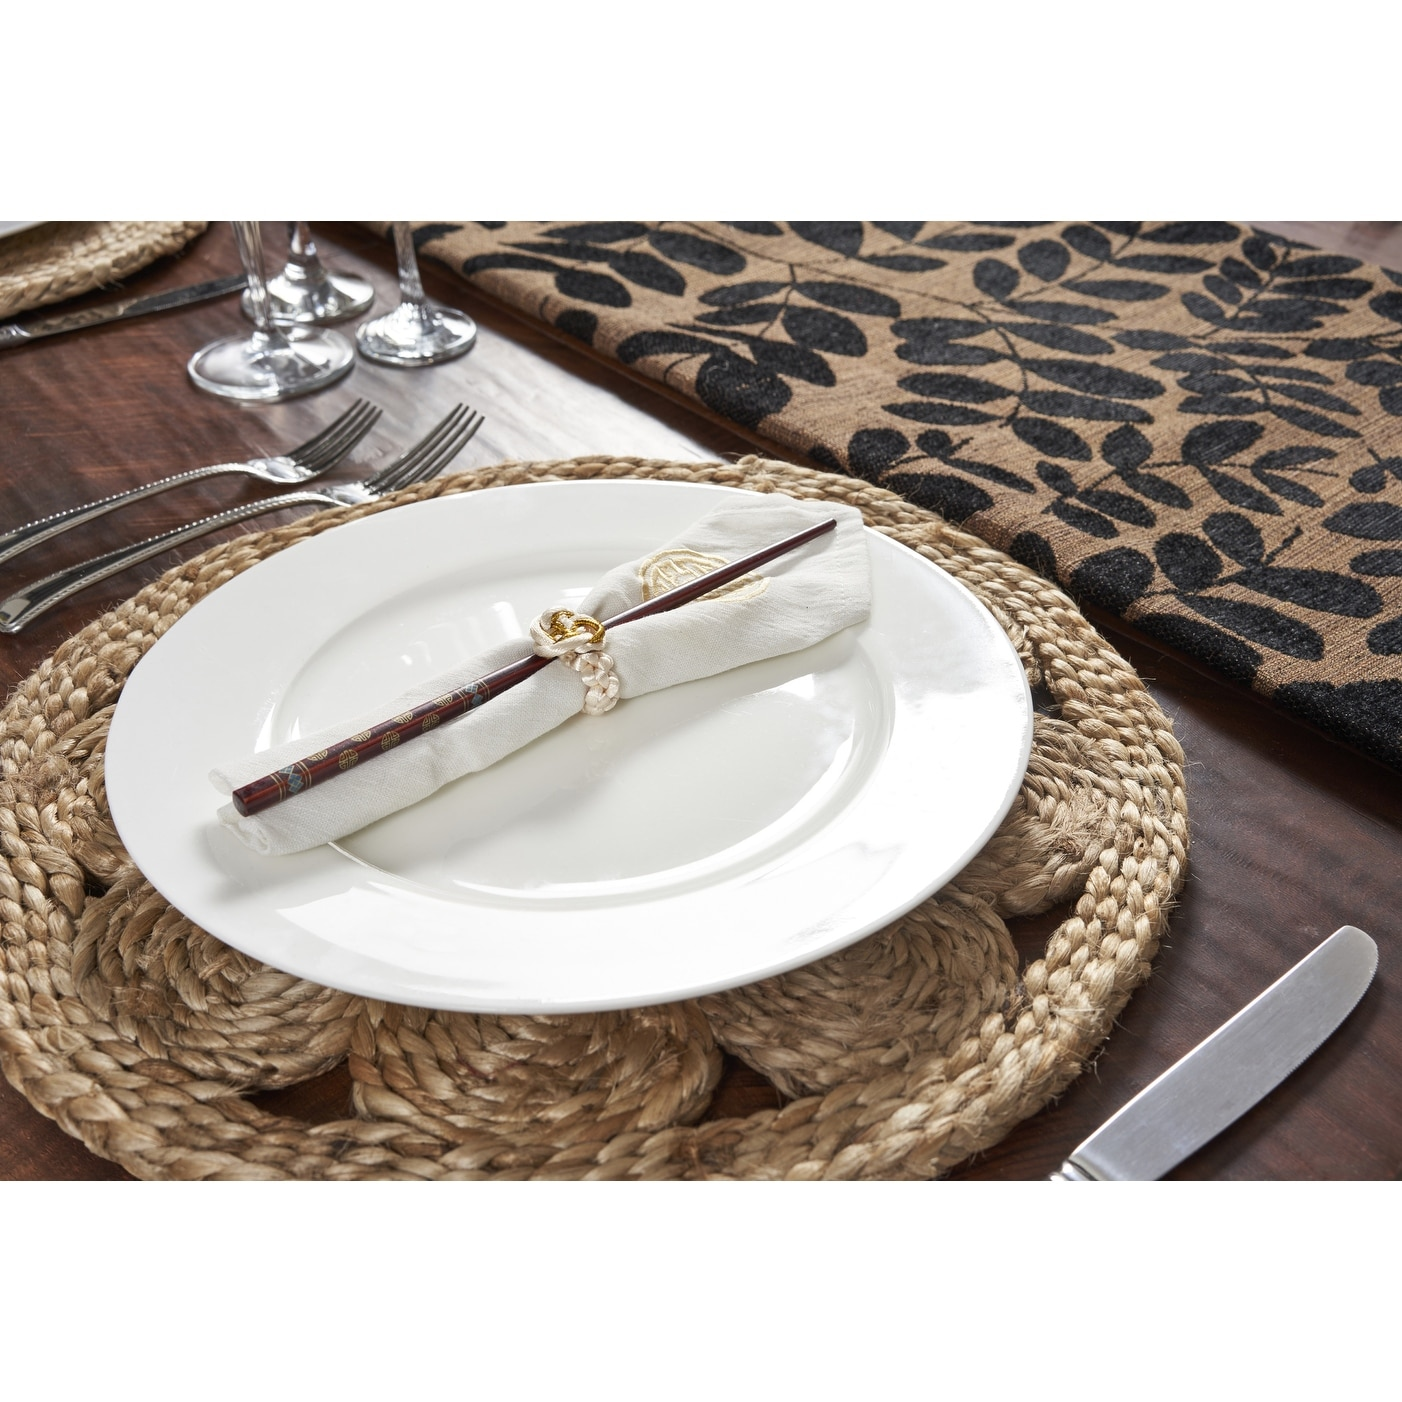 LR Home Natural Jute 15 in. x 15 in. Round Placemats ( Set